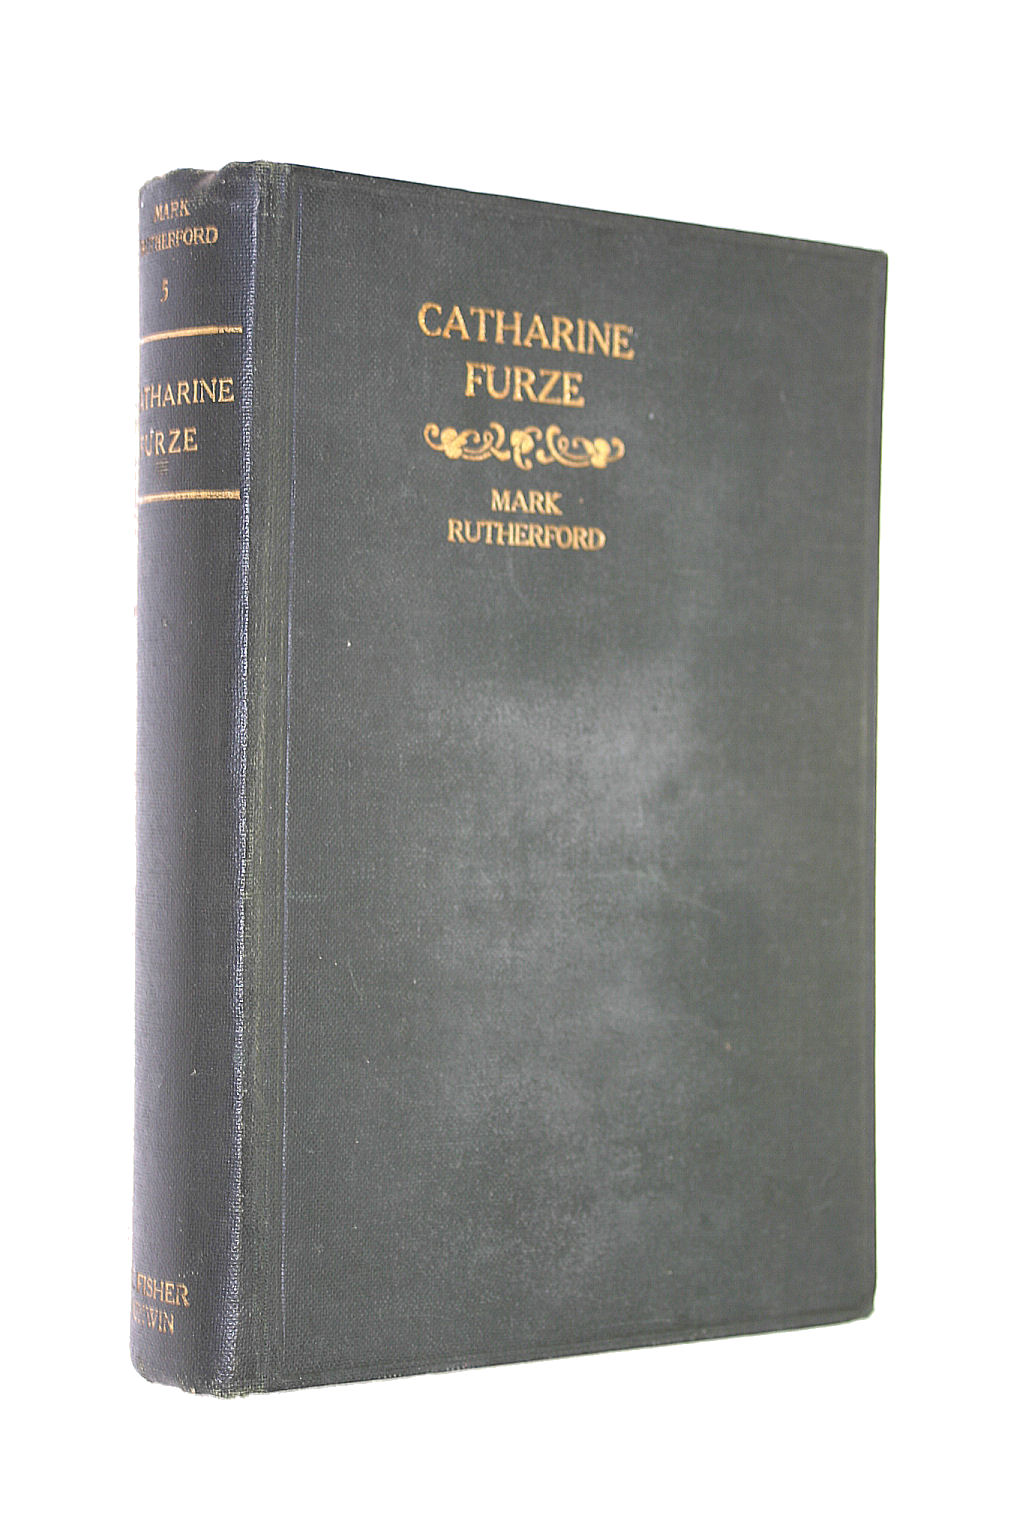 Image for Catharine Furze, edited by his friend Reuben Shapcott